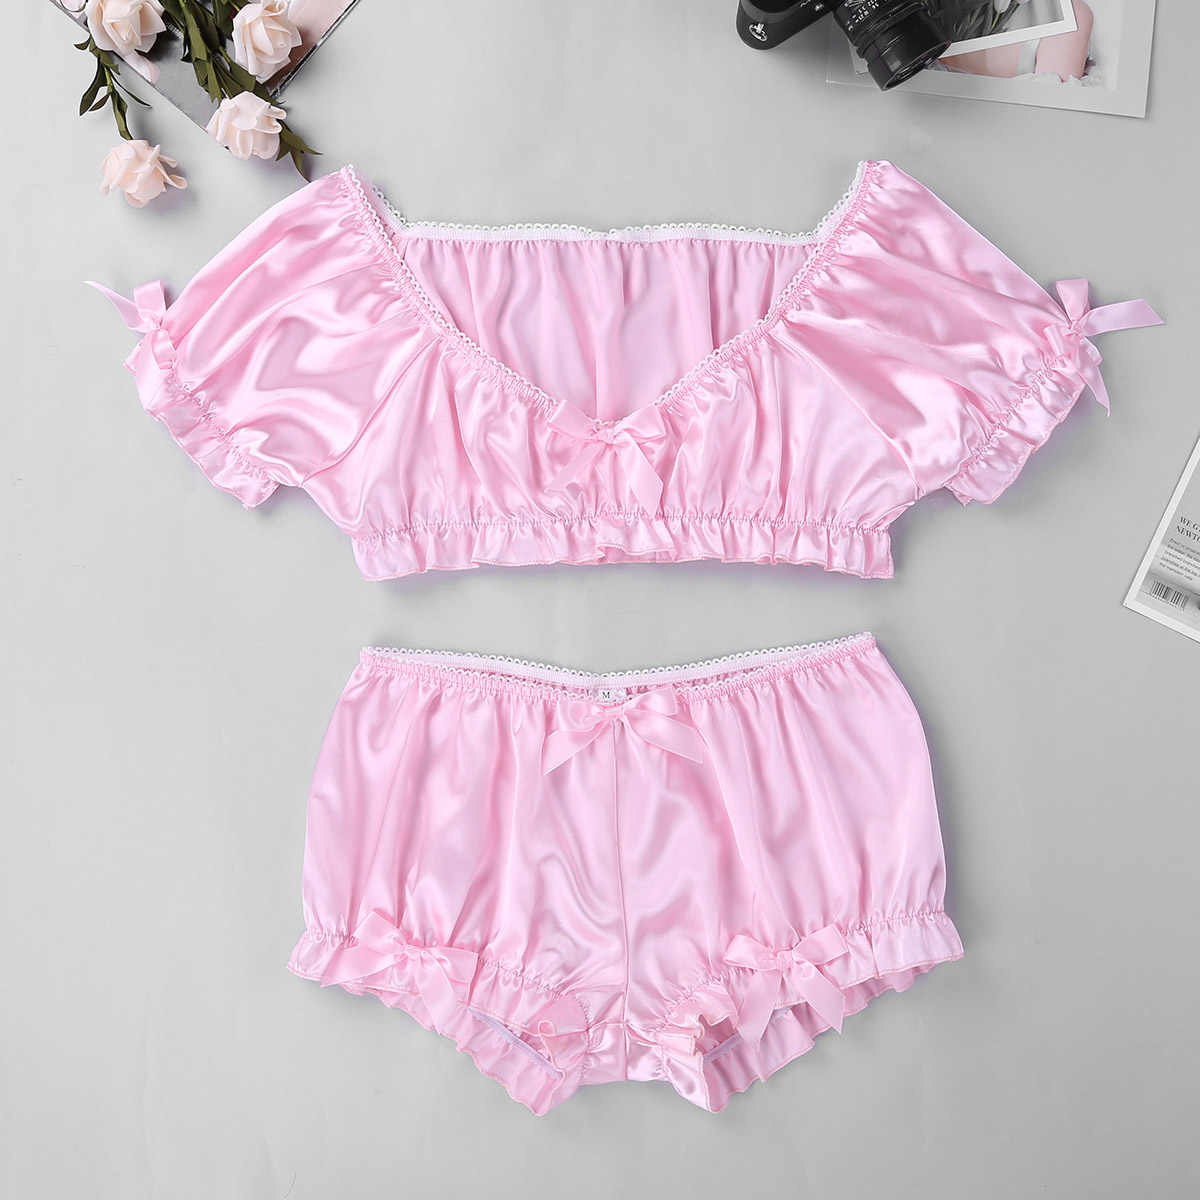 fd715150a Sissy Smooth Soft Satin Two Piece Swimsuit Mens Bow Lingerie Set Crop Top  with Bloomers Boxer